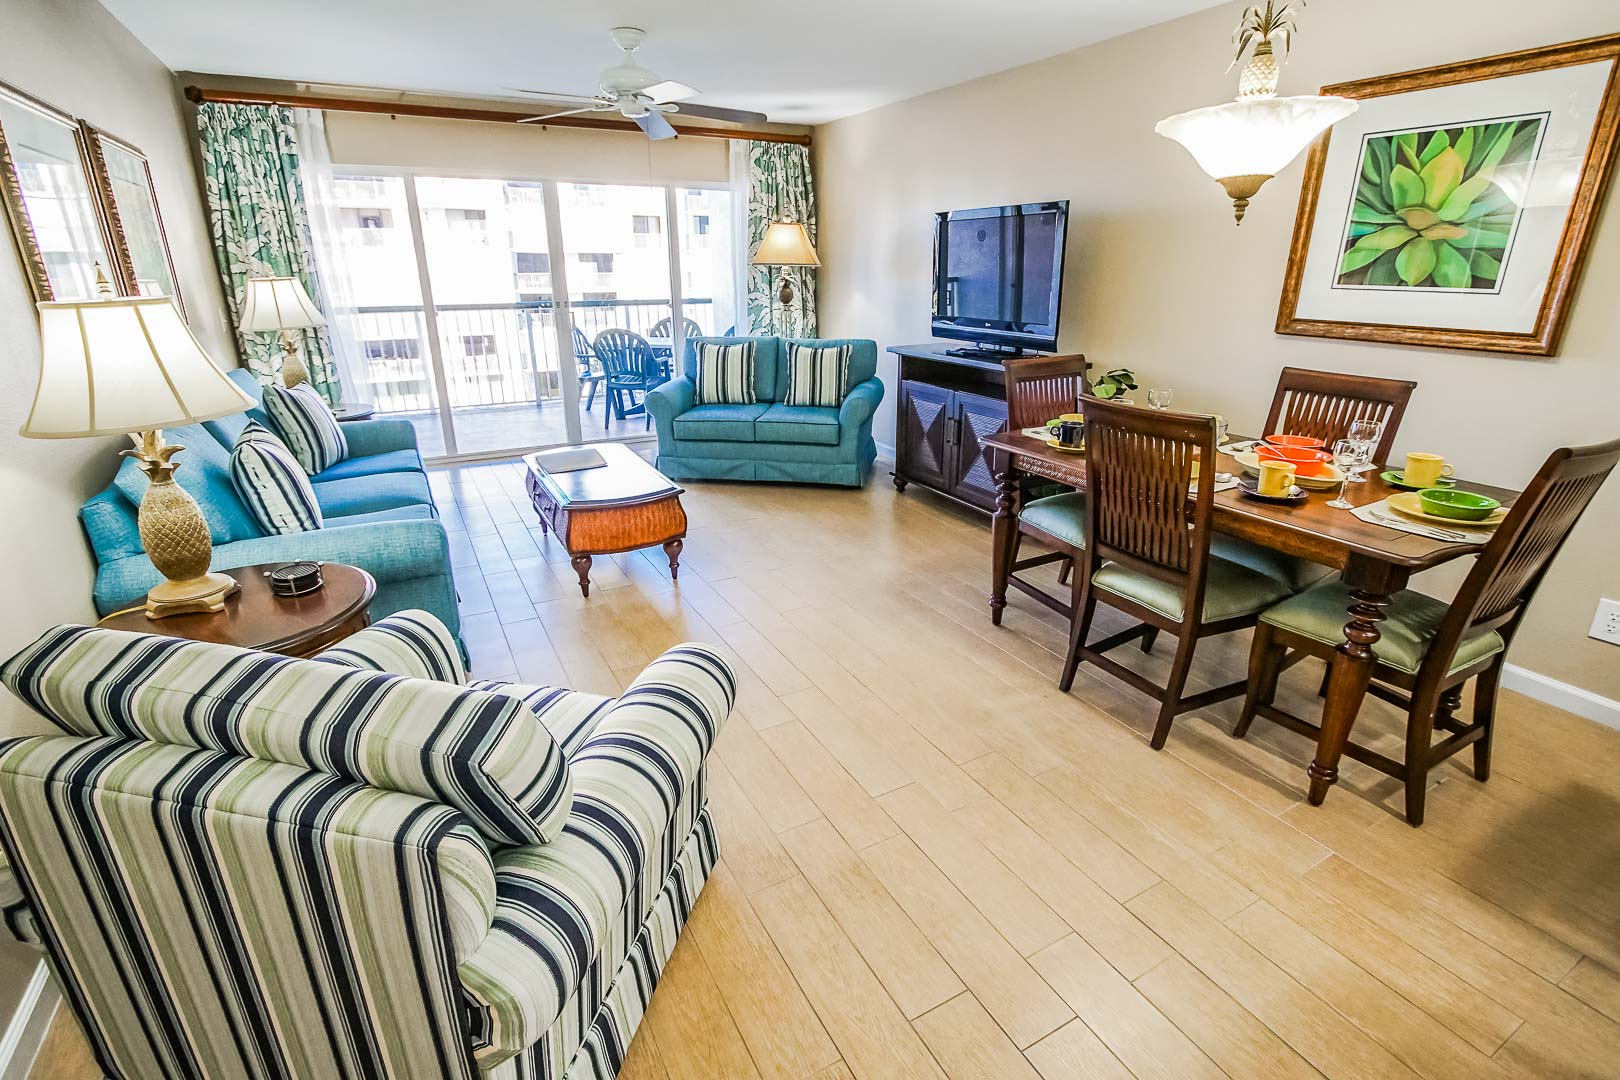 A spacious and modern living room area at VRI's The Resort on Cocoa Beach in Florida.